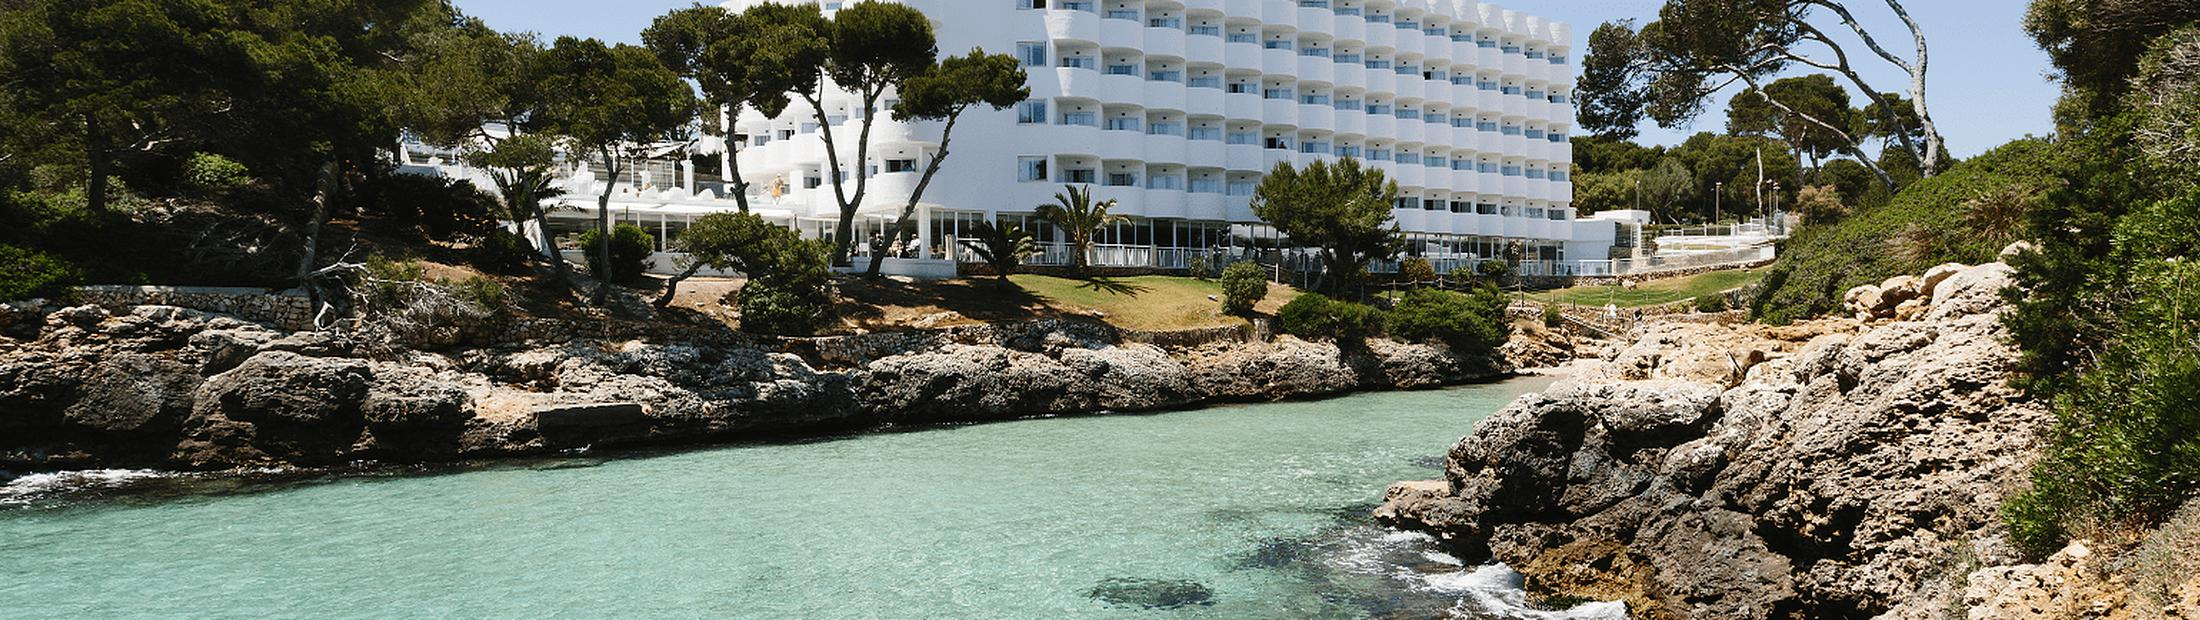 AluaSoul Mallorca Resort **** Mallorca AluaSoul Mallorca Resort (Adults Only) Hotel Cala d'Or, Mallorca